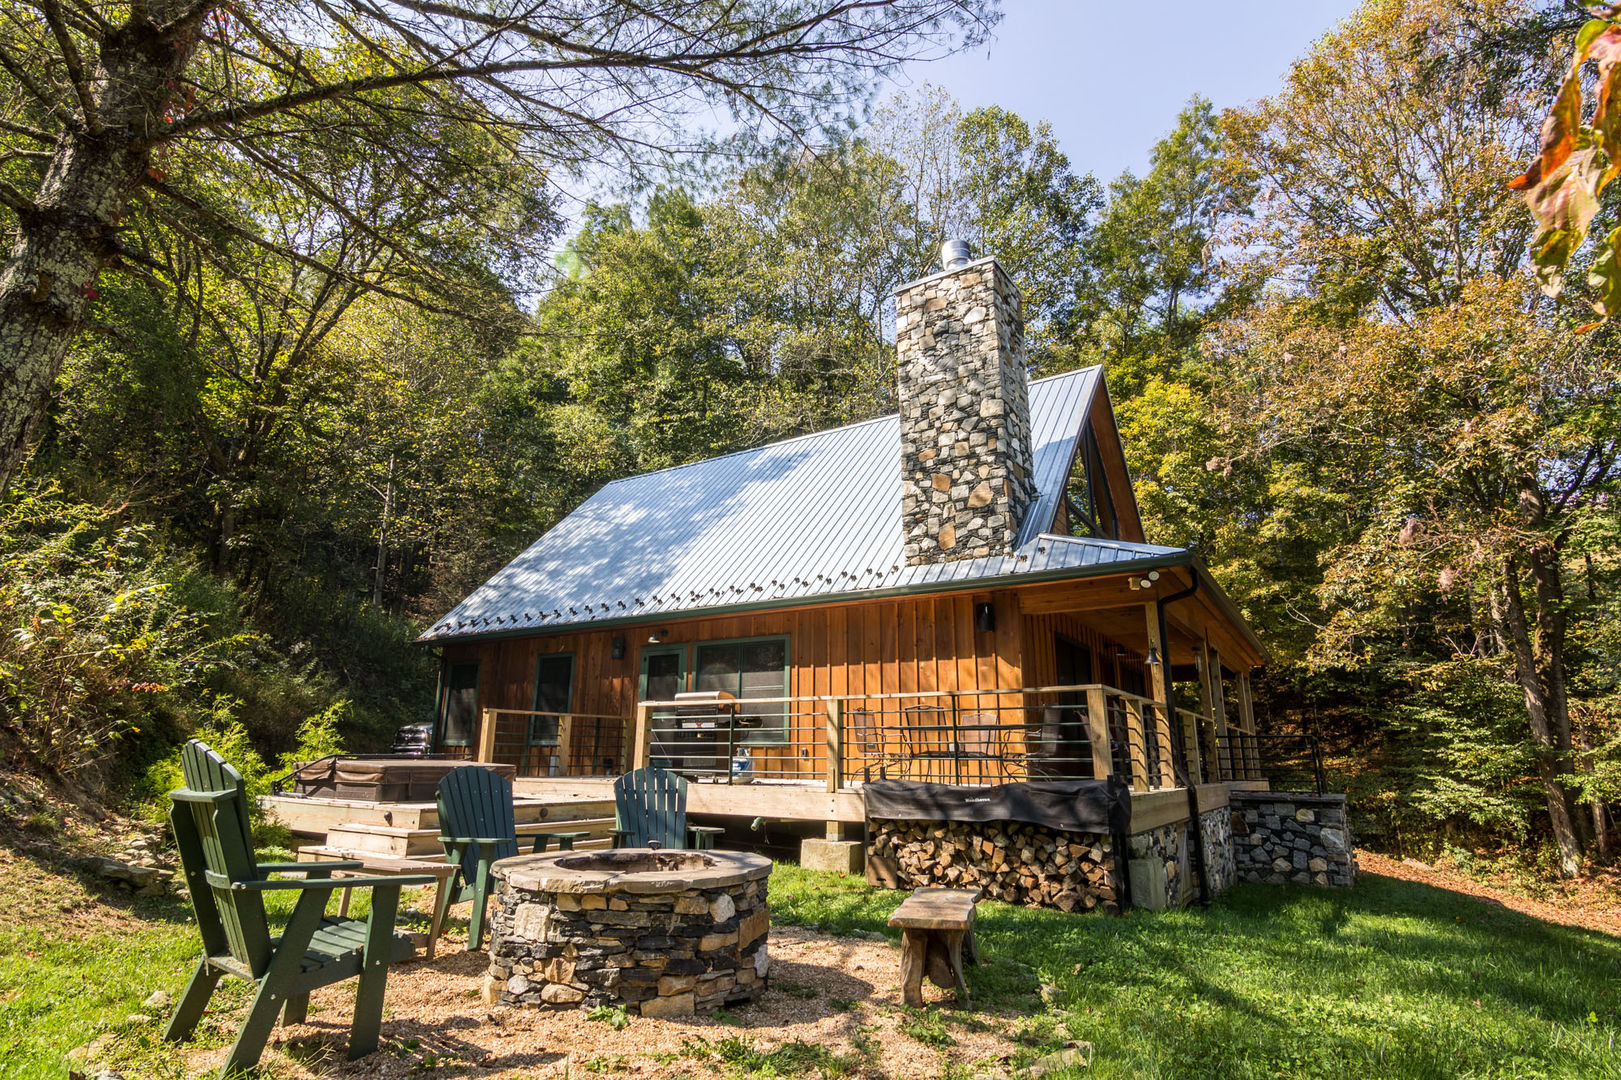 Side of the home with fire pit and chairs